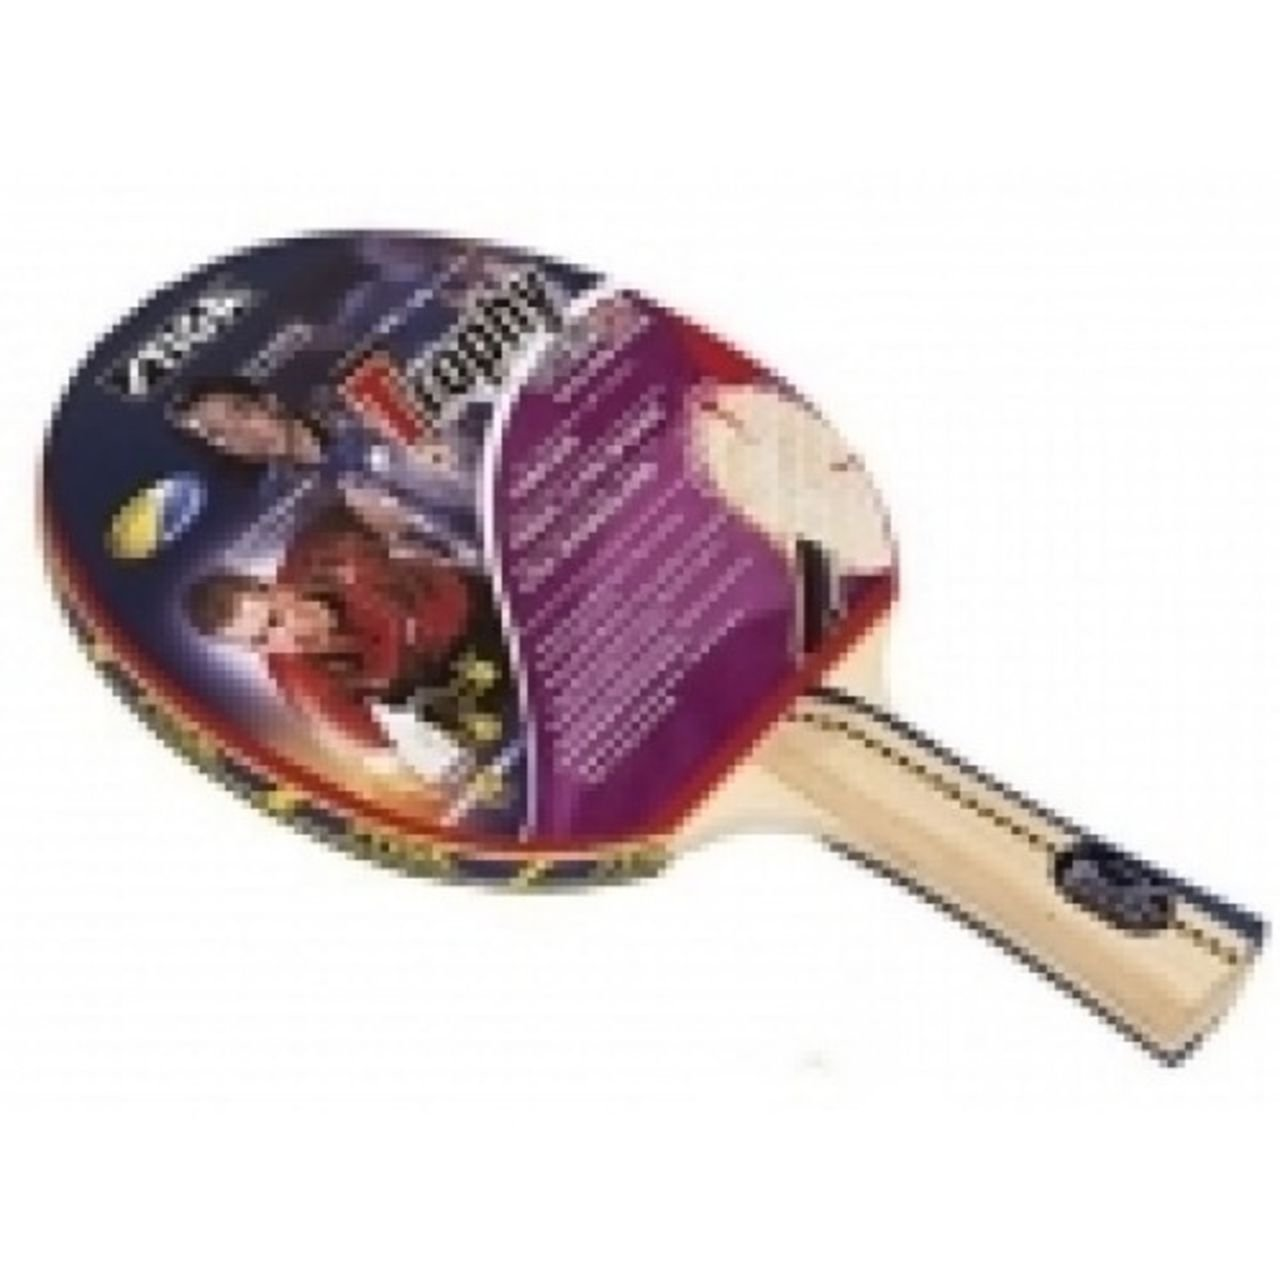 Stiga Trophy Ittf Approved Blade Light Weight Easy Grip Table Tennis Bat 5 Ply